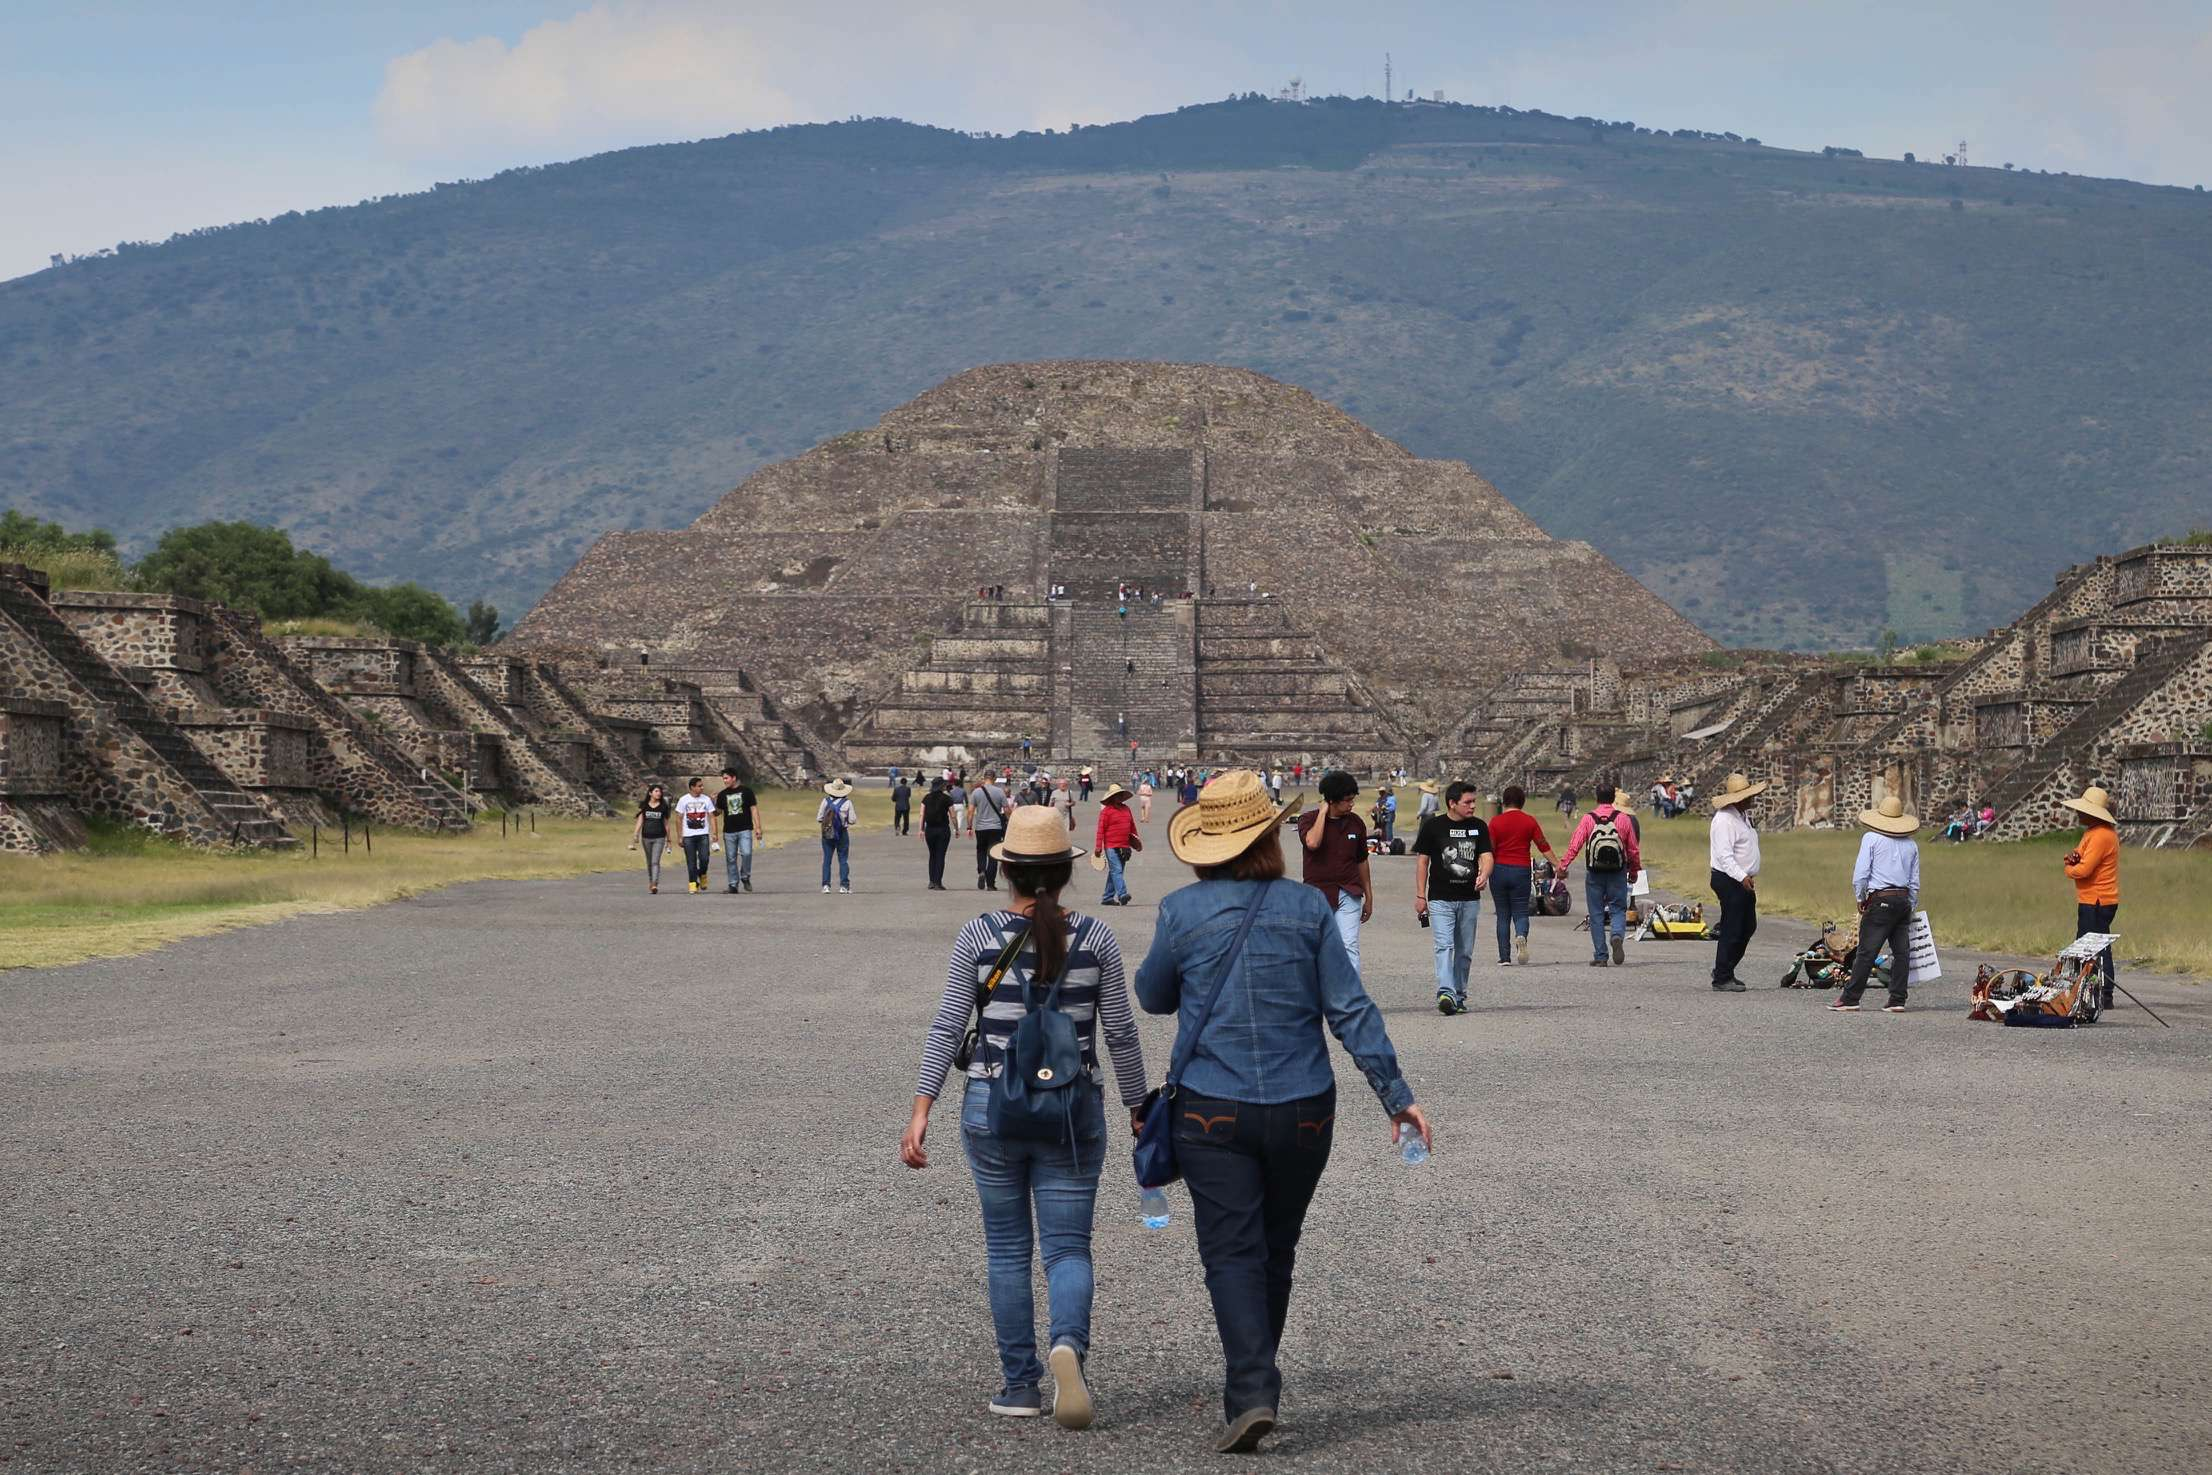 A pair of visitors stroll along the Avenue of the Dead on their way to inspect the Pyramid of the Moon as they approach a gauntlet of vendors, hawking trinkets.